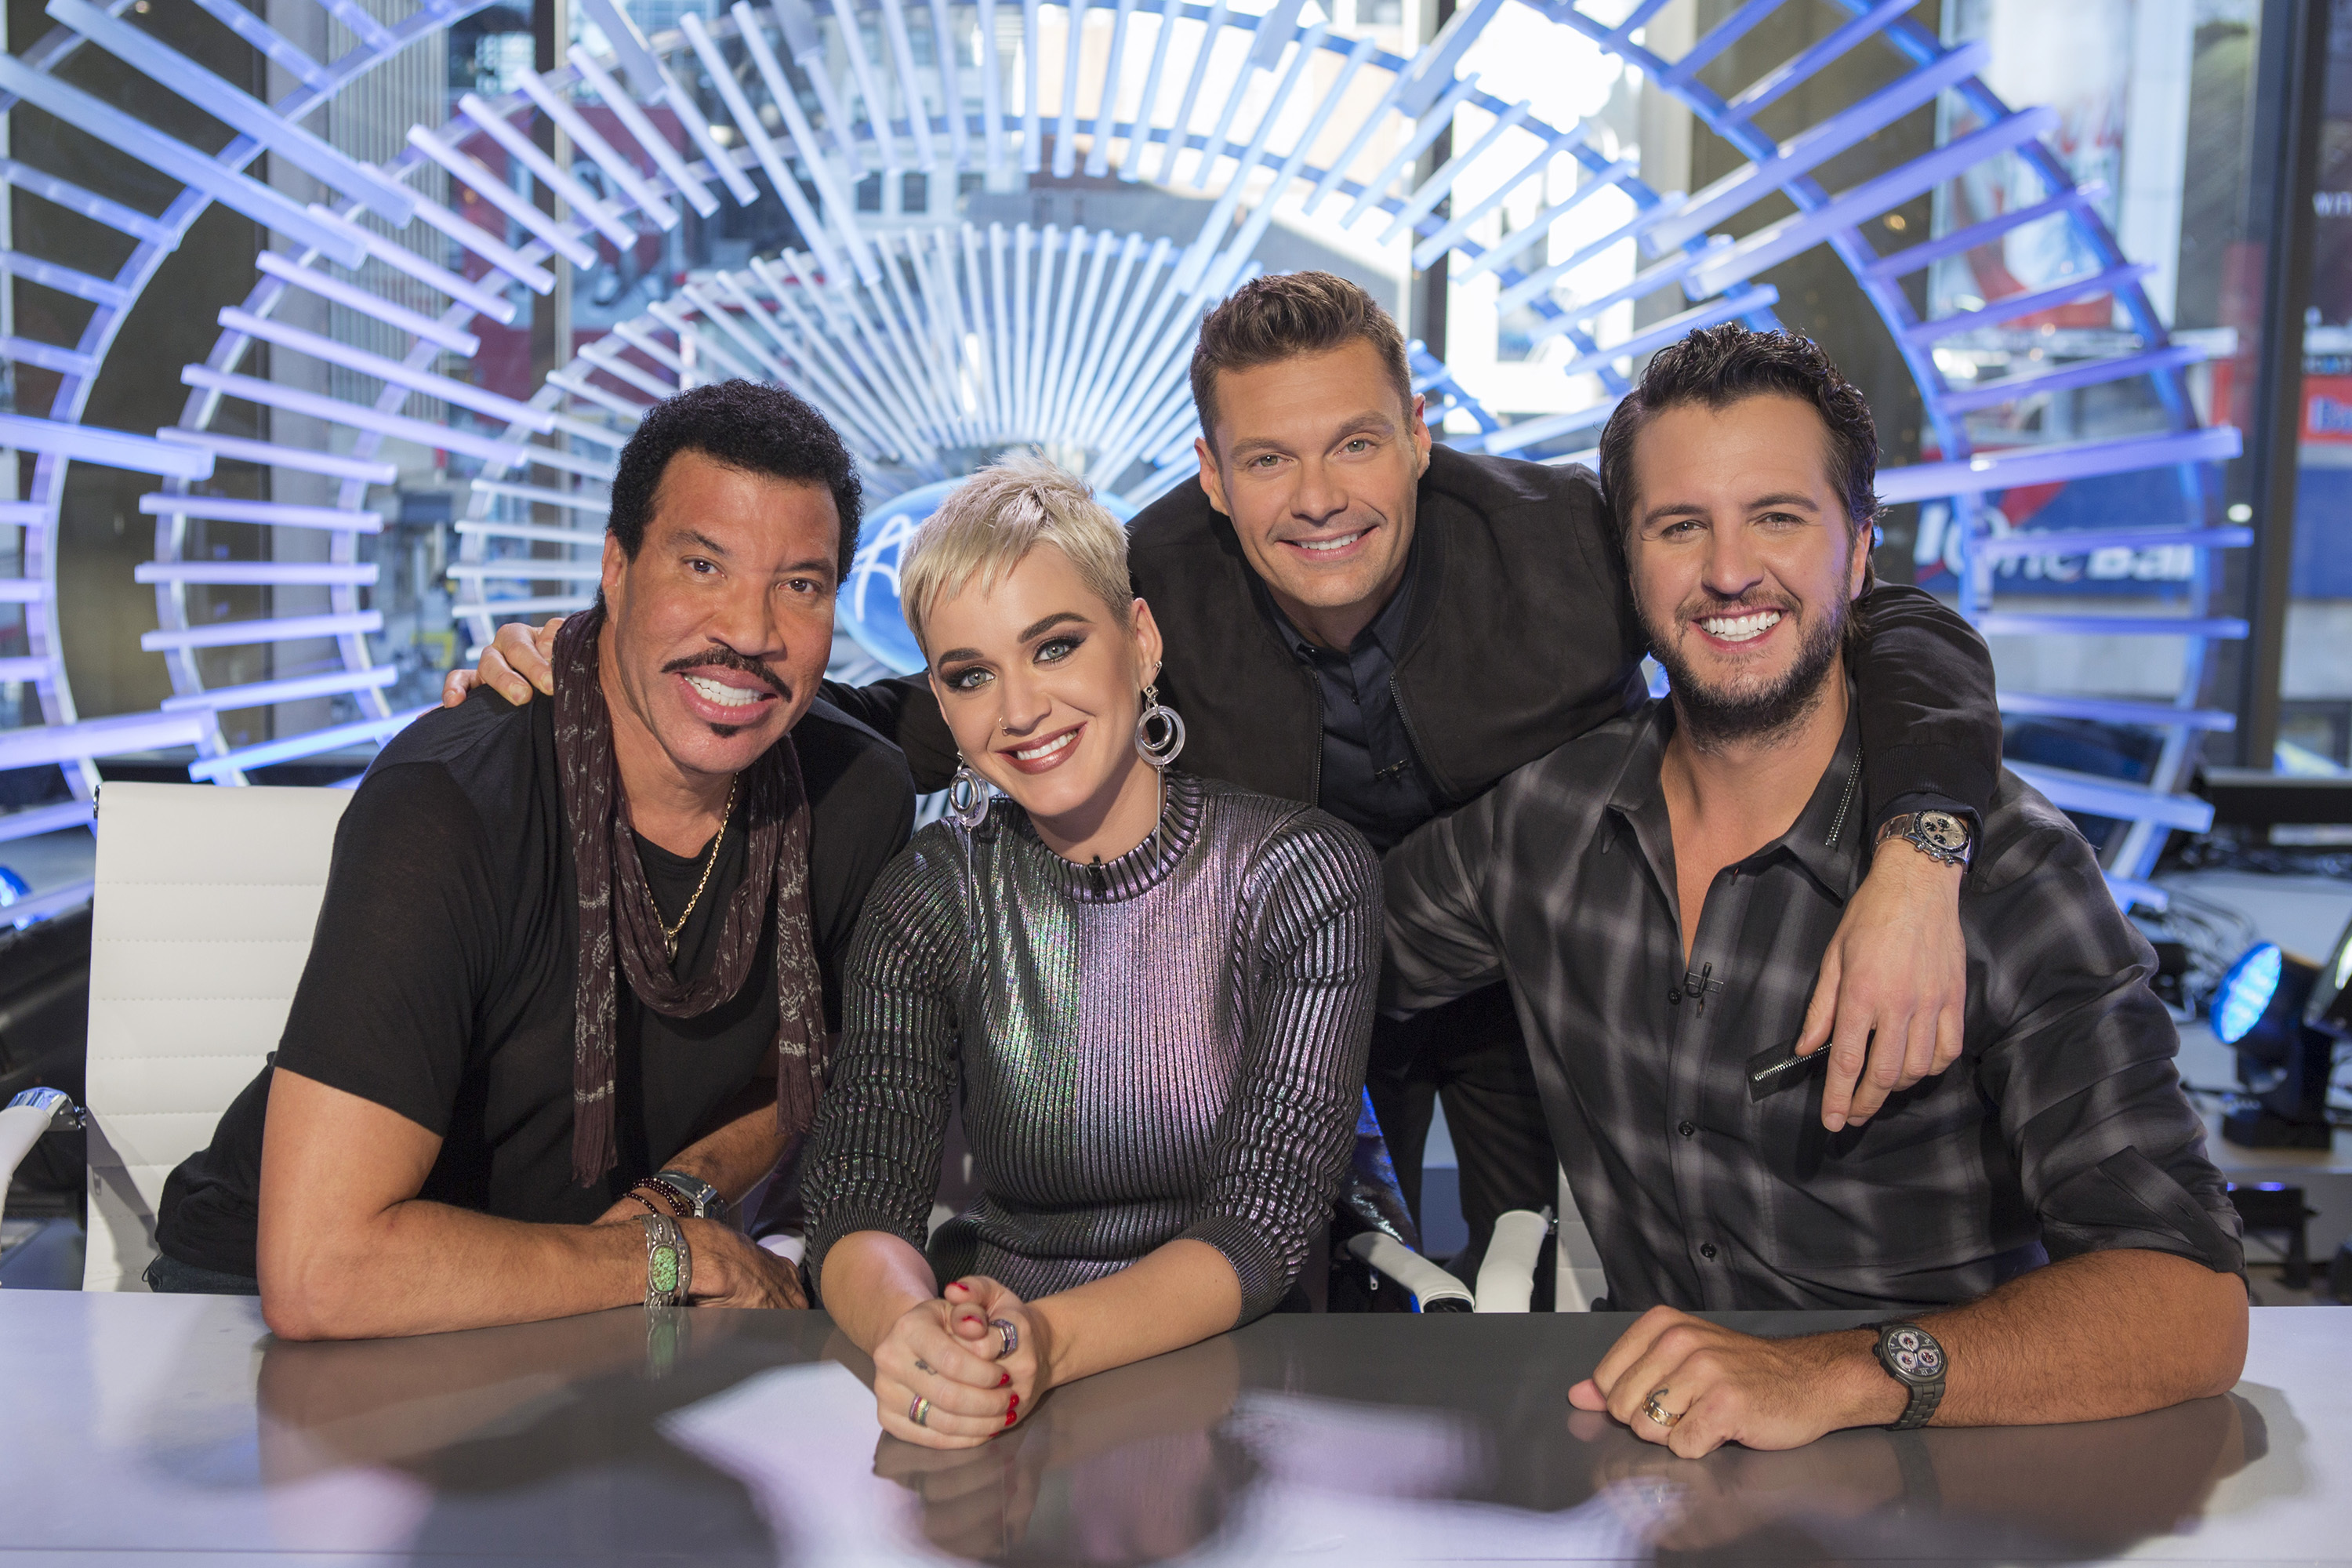 """ABC's """"American Idol"""" judges Lionel Richie, Katy Perry and Luke Bryan pose with host Ryan Seacrest for a photo released by ABC on Oct. 4, 2017."""